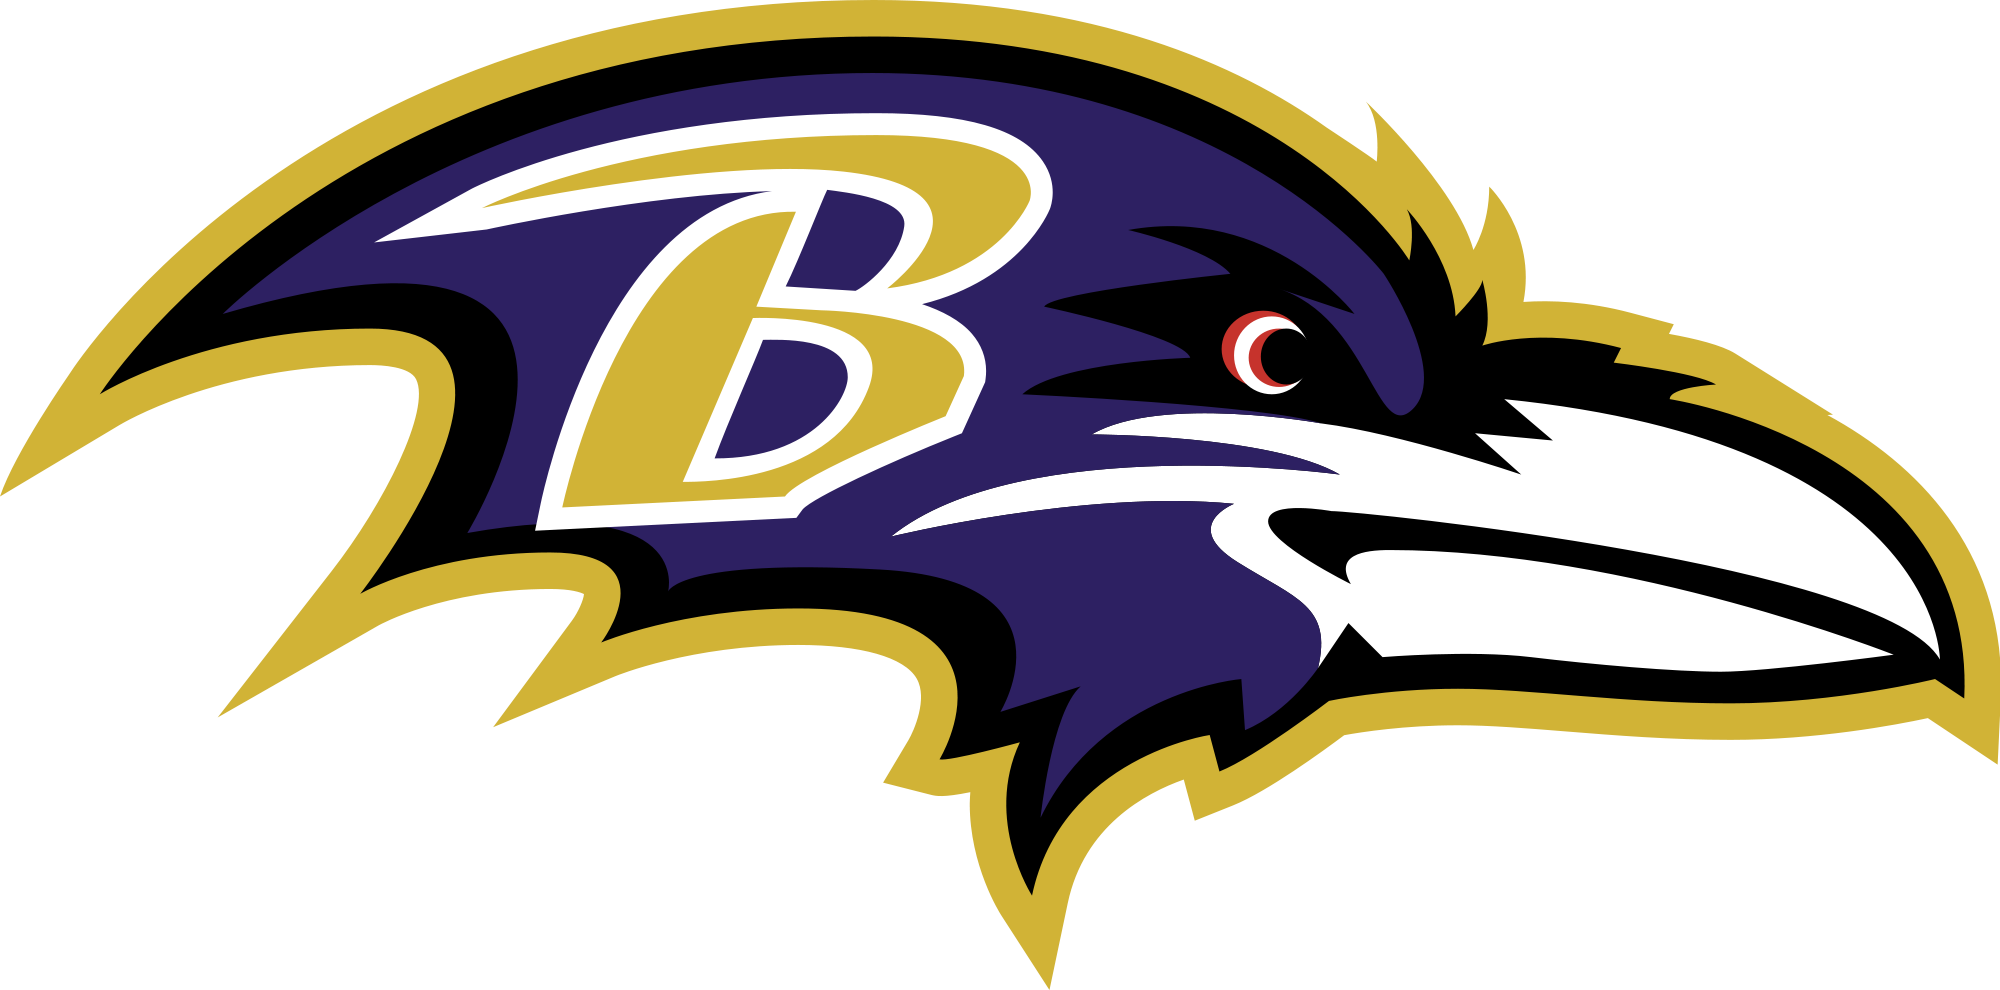 Which of the NFL team's logo is is shown below?